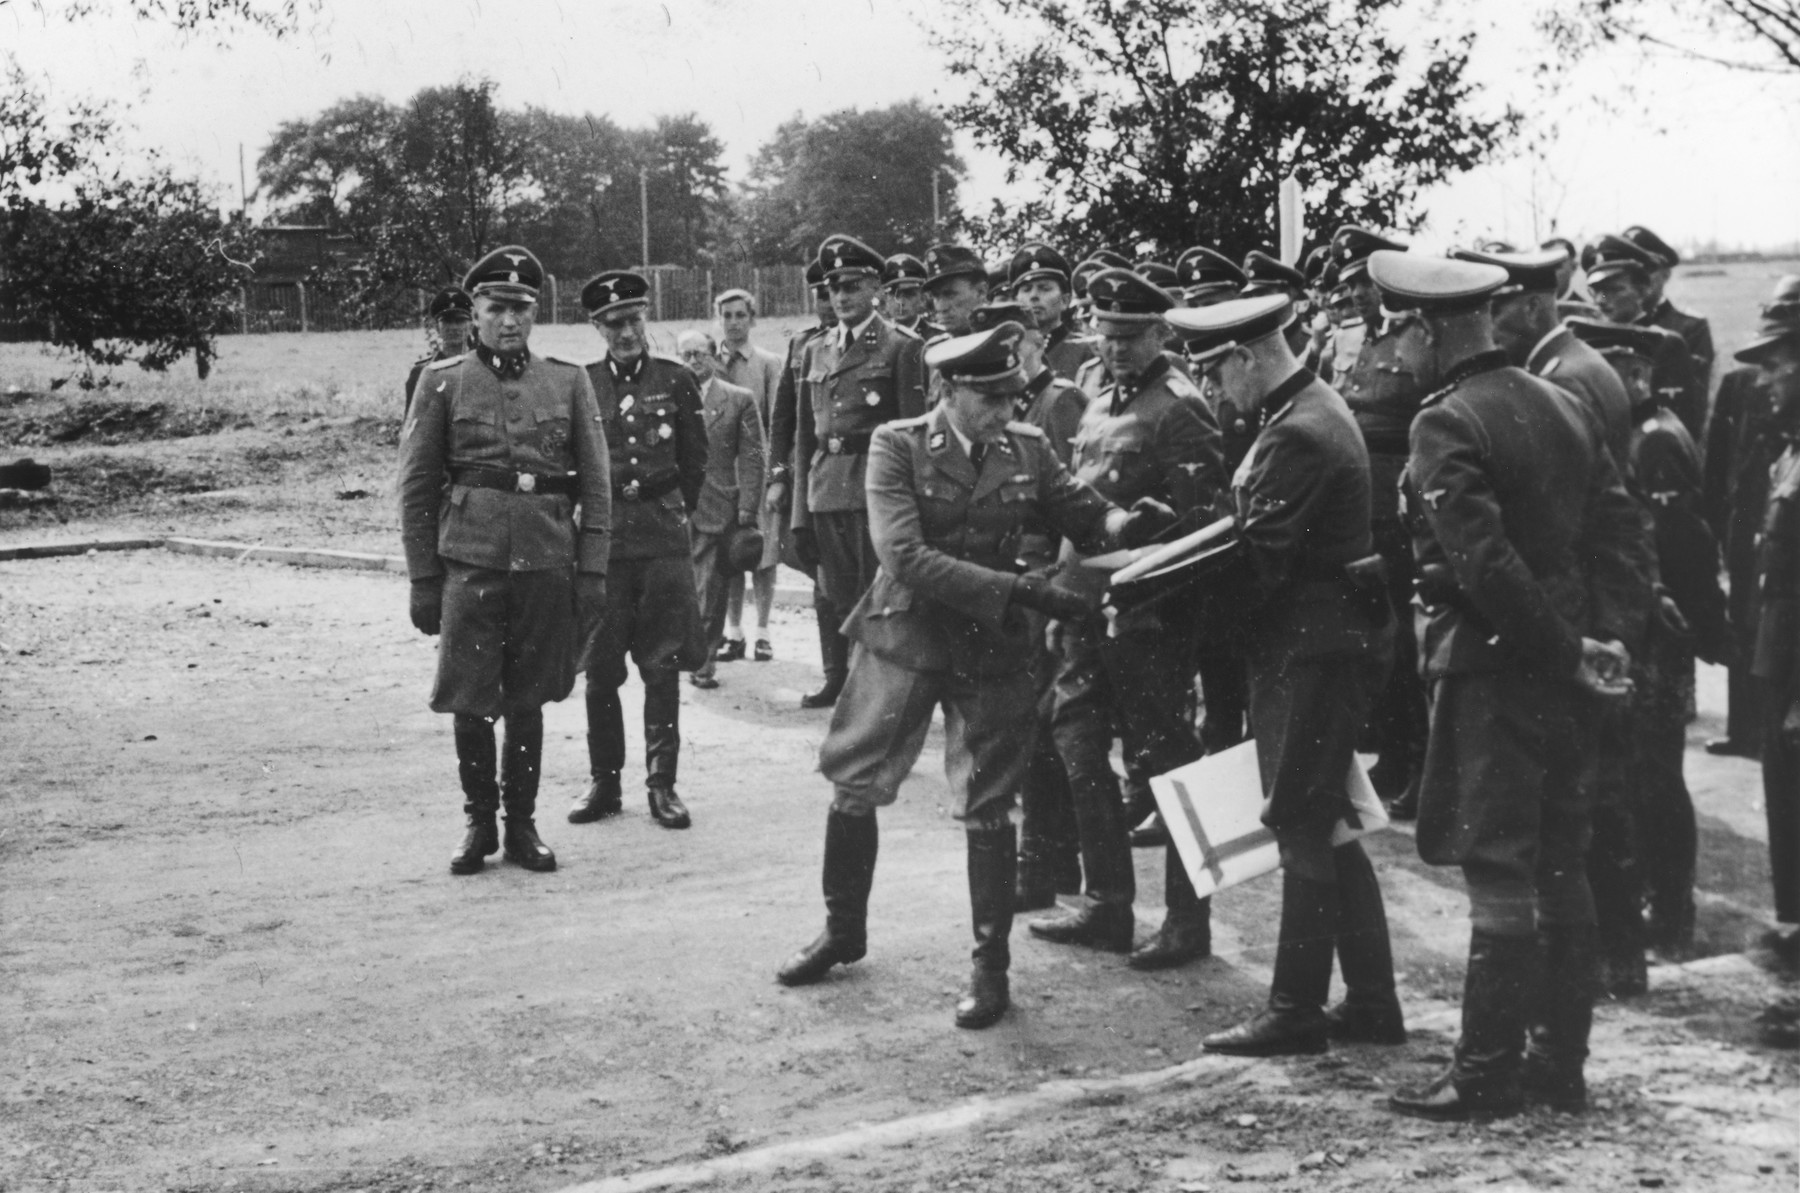 "Nazi officers watch the presentation of a document during the dedication of the new SS hospital in Auschwitz.  The original caption reads ""Die Ubergabe"" (the handover).  The ceremony marks the transfer of documents and authority from the construction department to the camp upon completion of the project.  Commandant Richard Baer stands on the far left. Karl Bischoff, head of construction in Silesia, is receiving the official documents from (most probably Werner Jothann) in preparation for handing them to Baer.  Karl Moeckel is looking down at the exchange of documents.  Also pictured are Drs. Enno Lolling, Eduard Wirths and Carl Clauberg.  Heinz Baumkoetter is in the back looking up slightly."